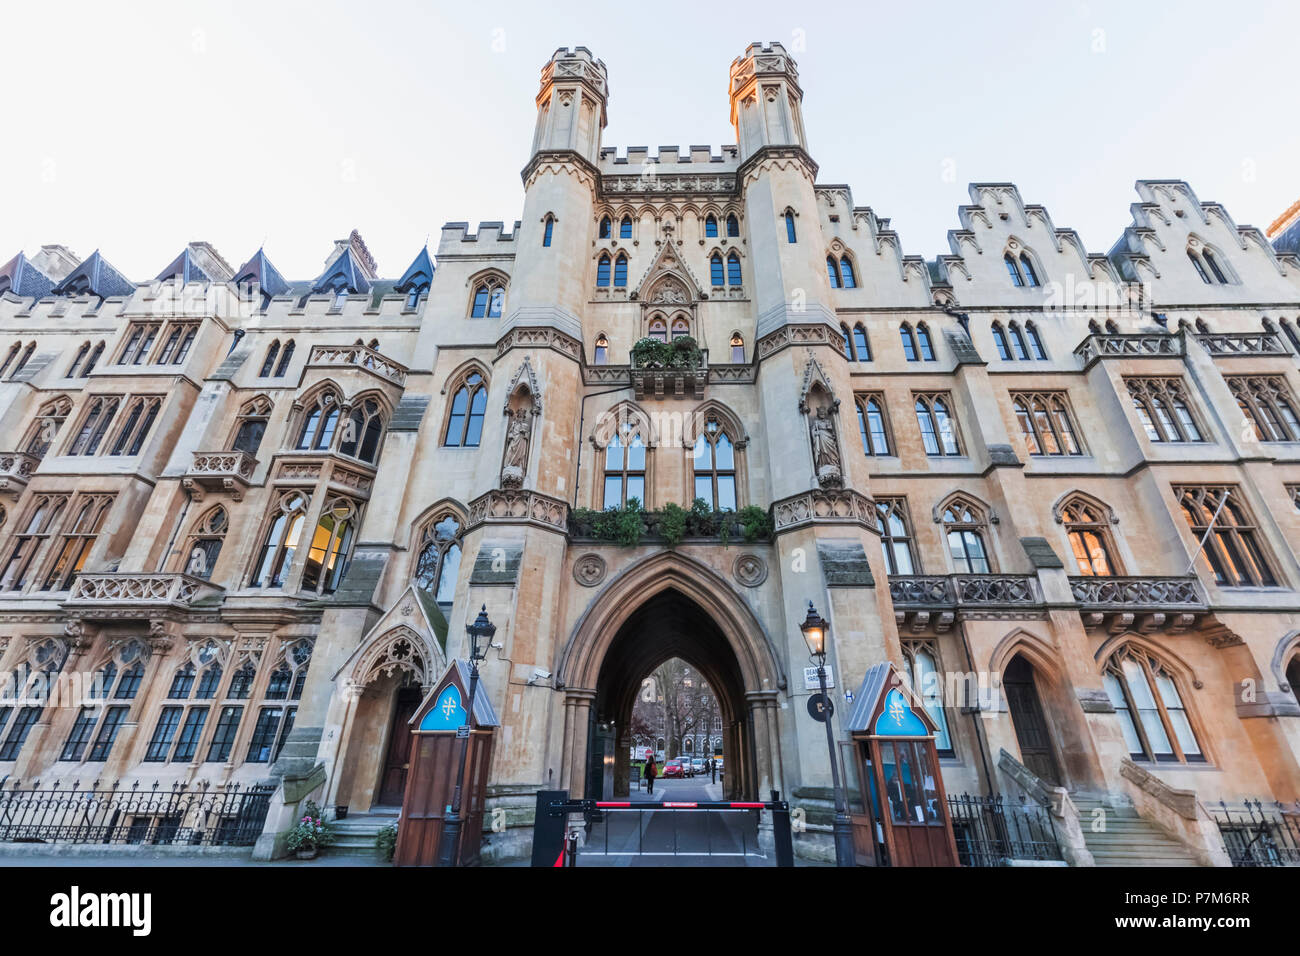 England, London, Westminter, Westminster Abbey, Entrance to the Dean's Yard - Stock Image